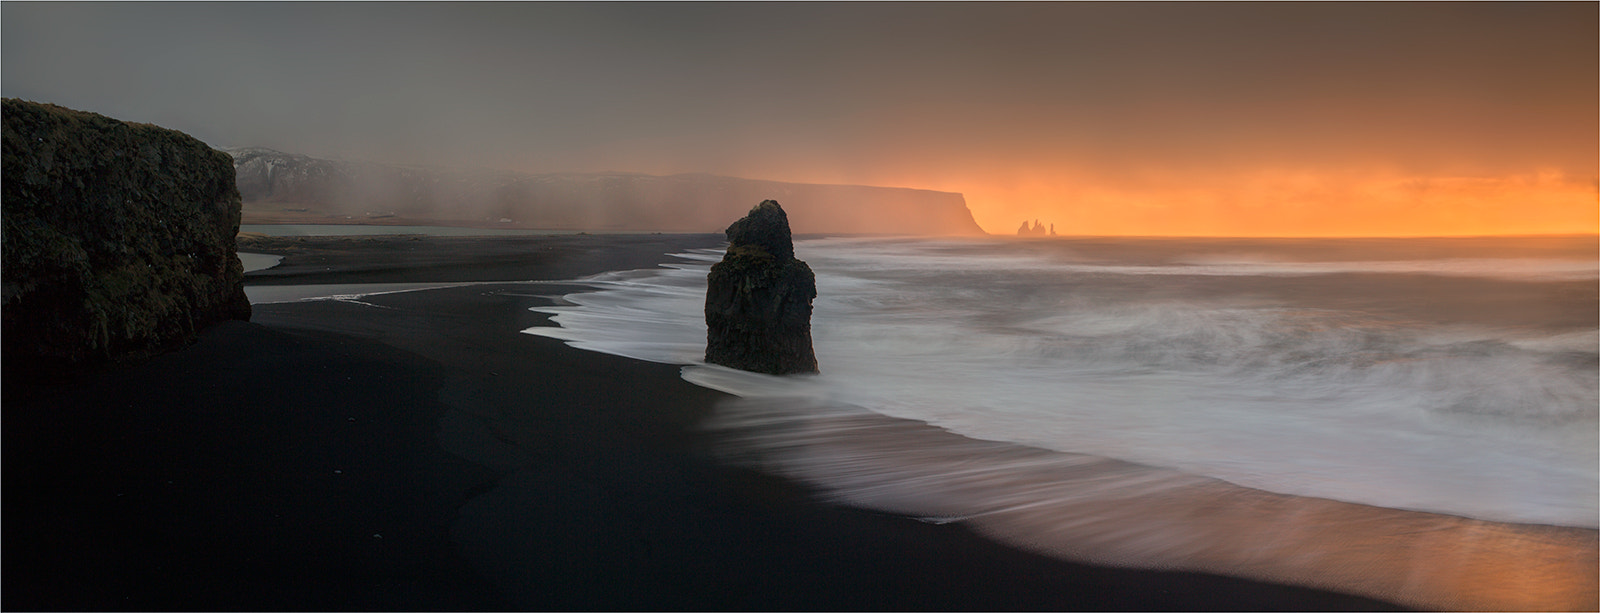 Photograph Iceland by Yury Pustovoy on 500px